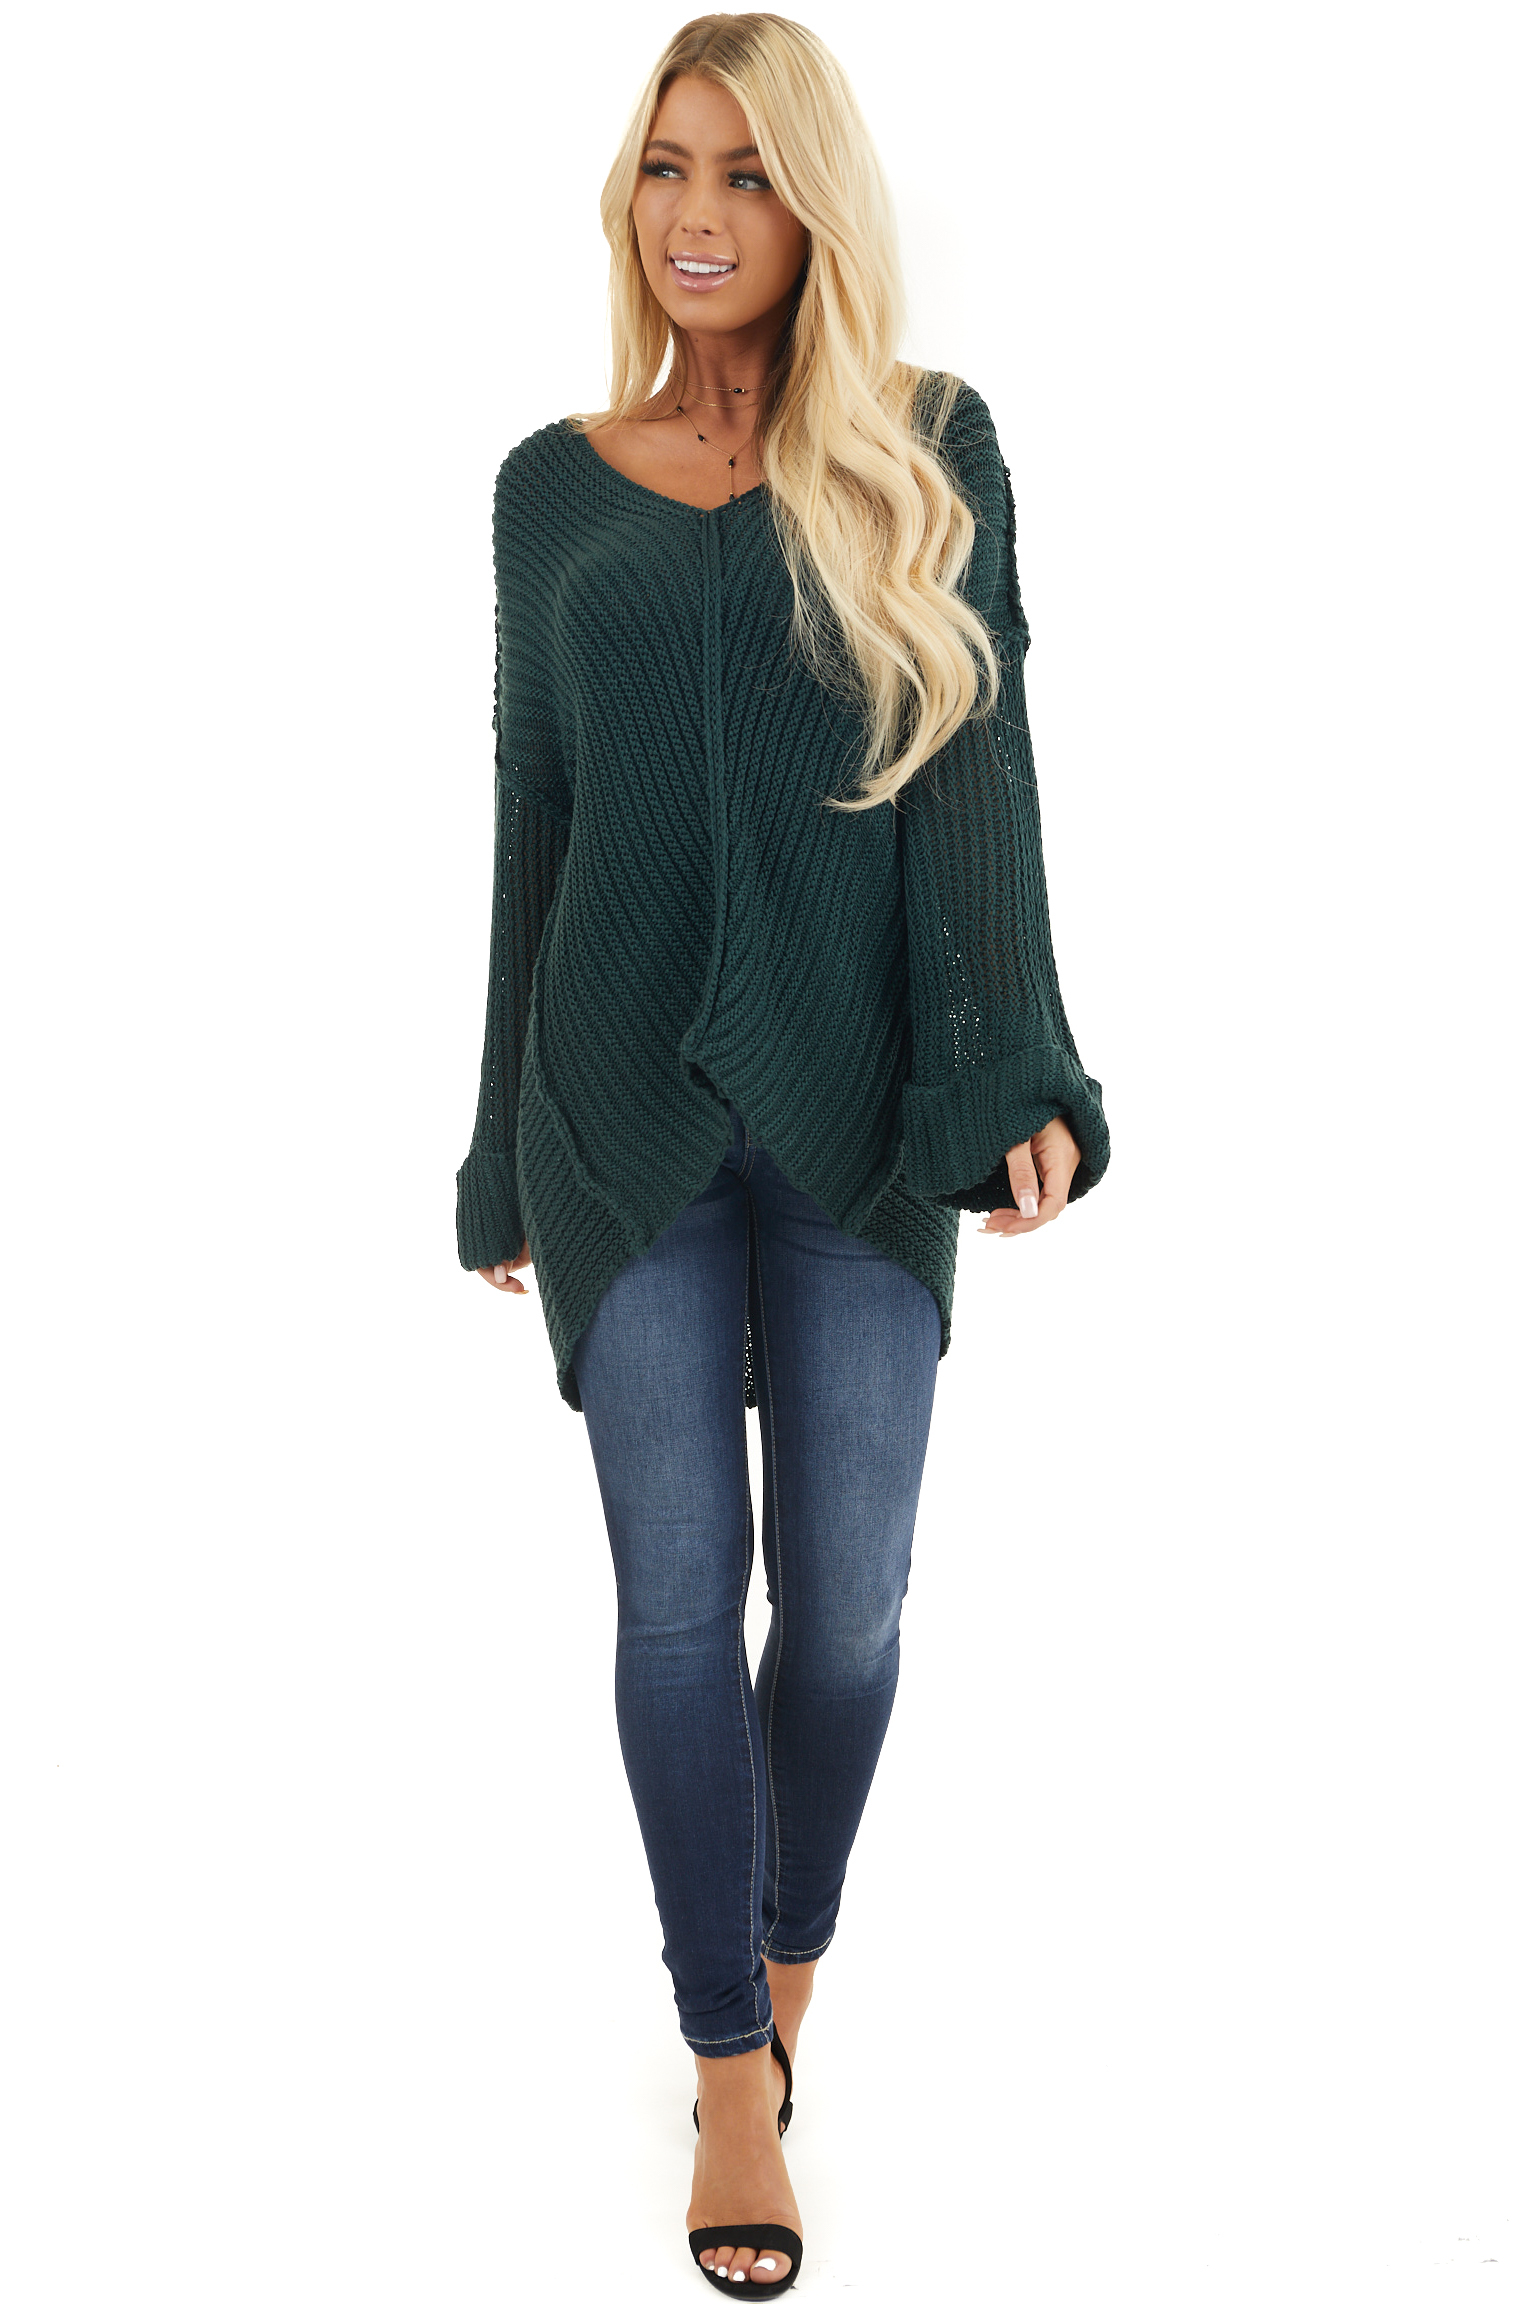 Pine Green High Low Long Sleeve Sweater with V Neckline